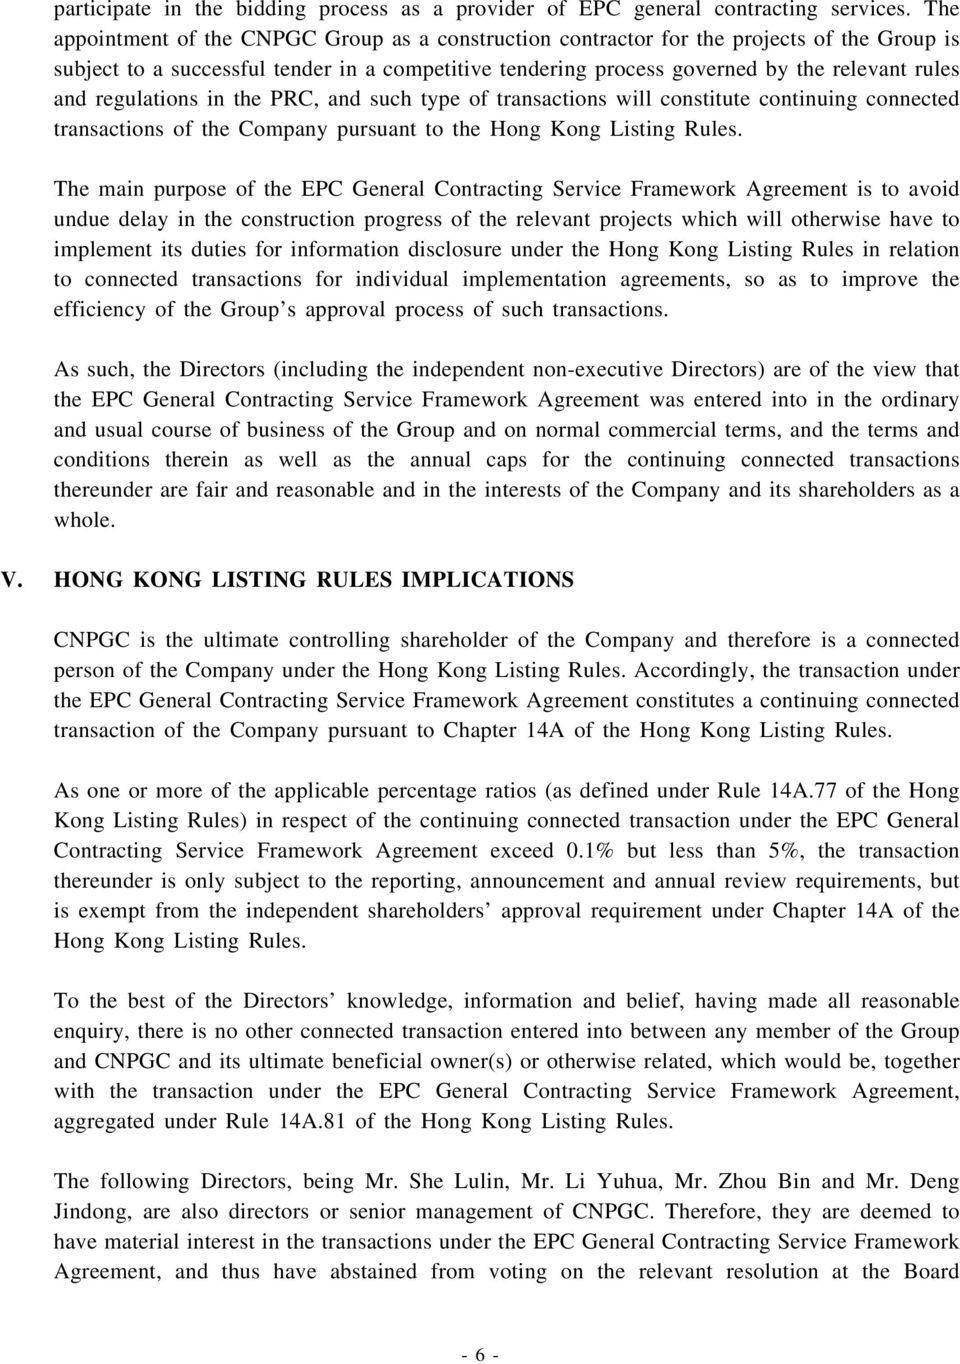 regulations in the PRC, and such type of transactions will constitute continuing connected transactions of the Company pursuant to the Hong Kong Listing Rules.